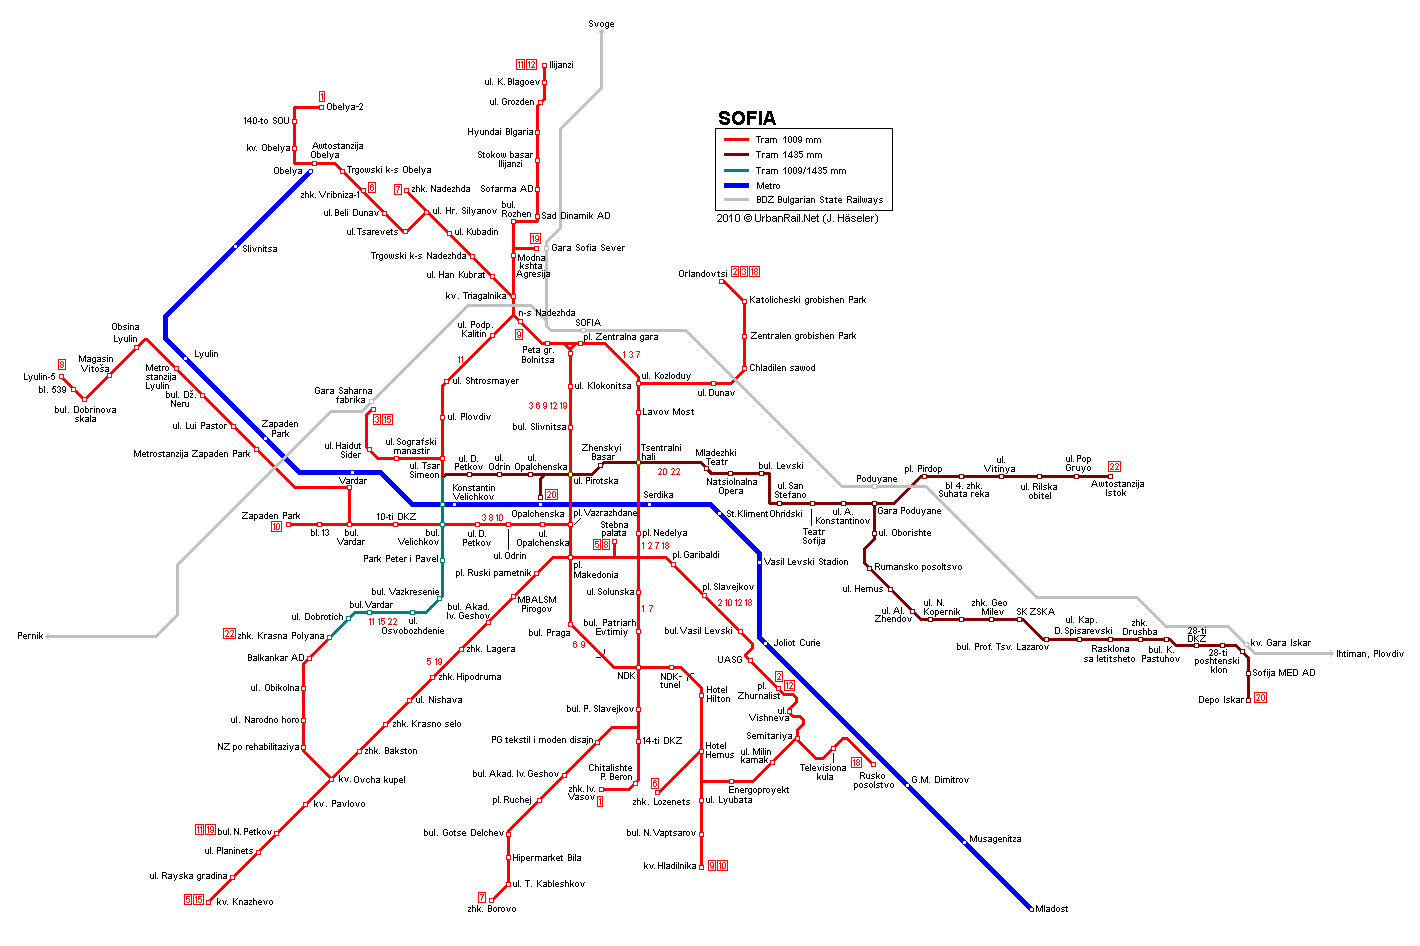 Budapest Subway Map English.Sofia Tram Map For Free Download Map Of Sofia Tramway Network